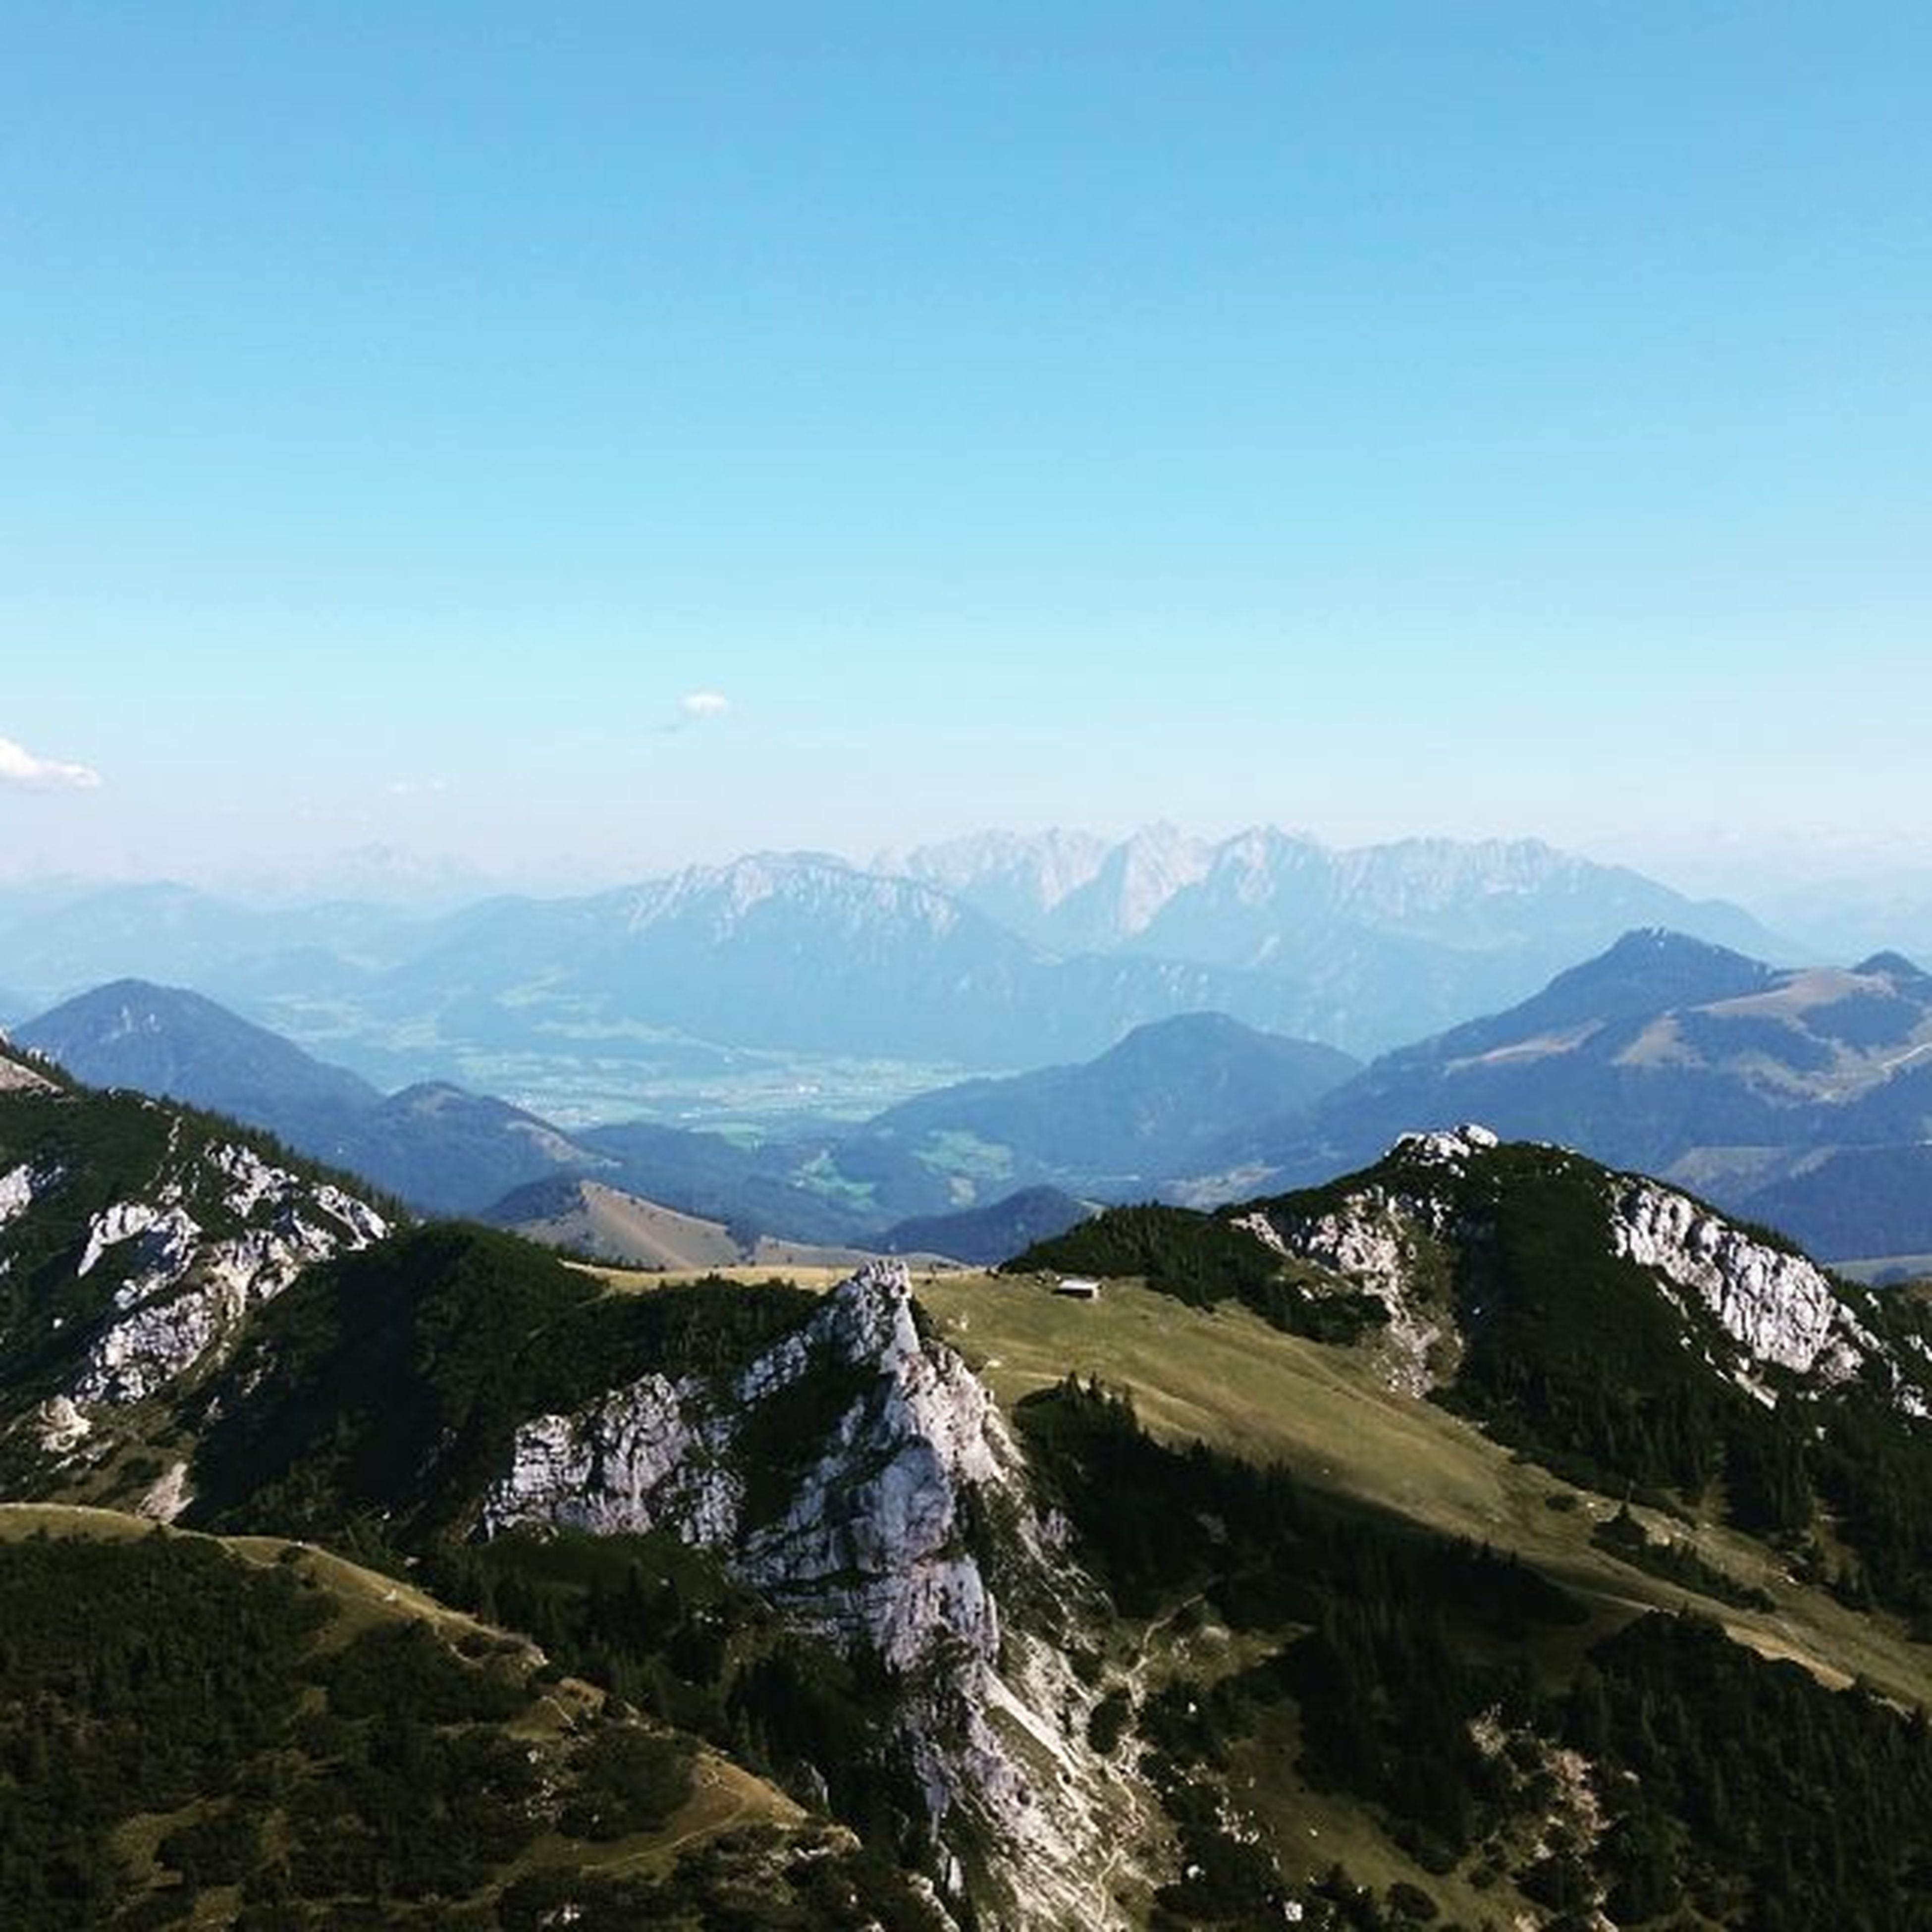 mountain, clear sky, mountain range, tranquil scene, tranquility, scenics, copy space, landscape, beauty in nature, blue, nature, non-urban scene, idyllic, remote, day, tree, outdoors, sky, physical geography, no people